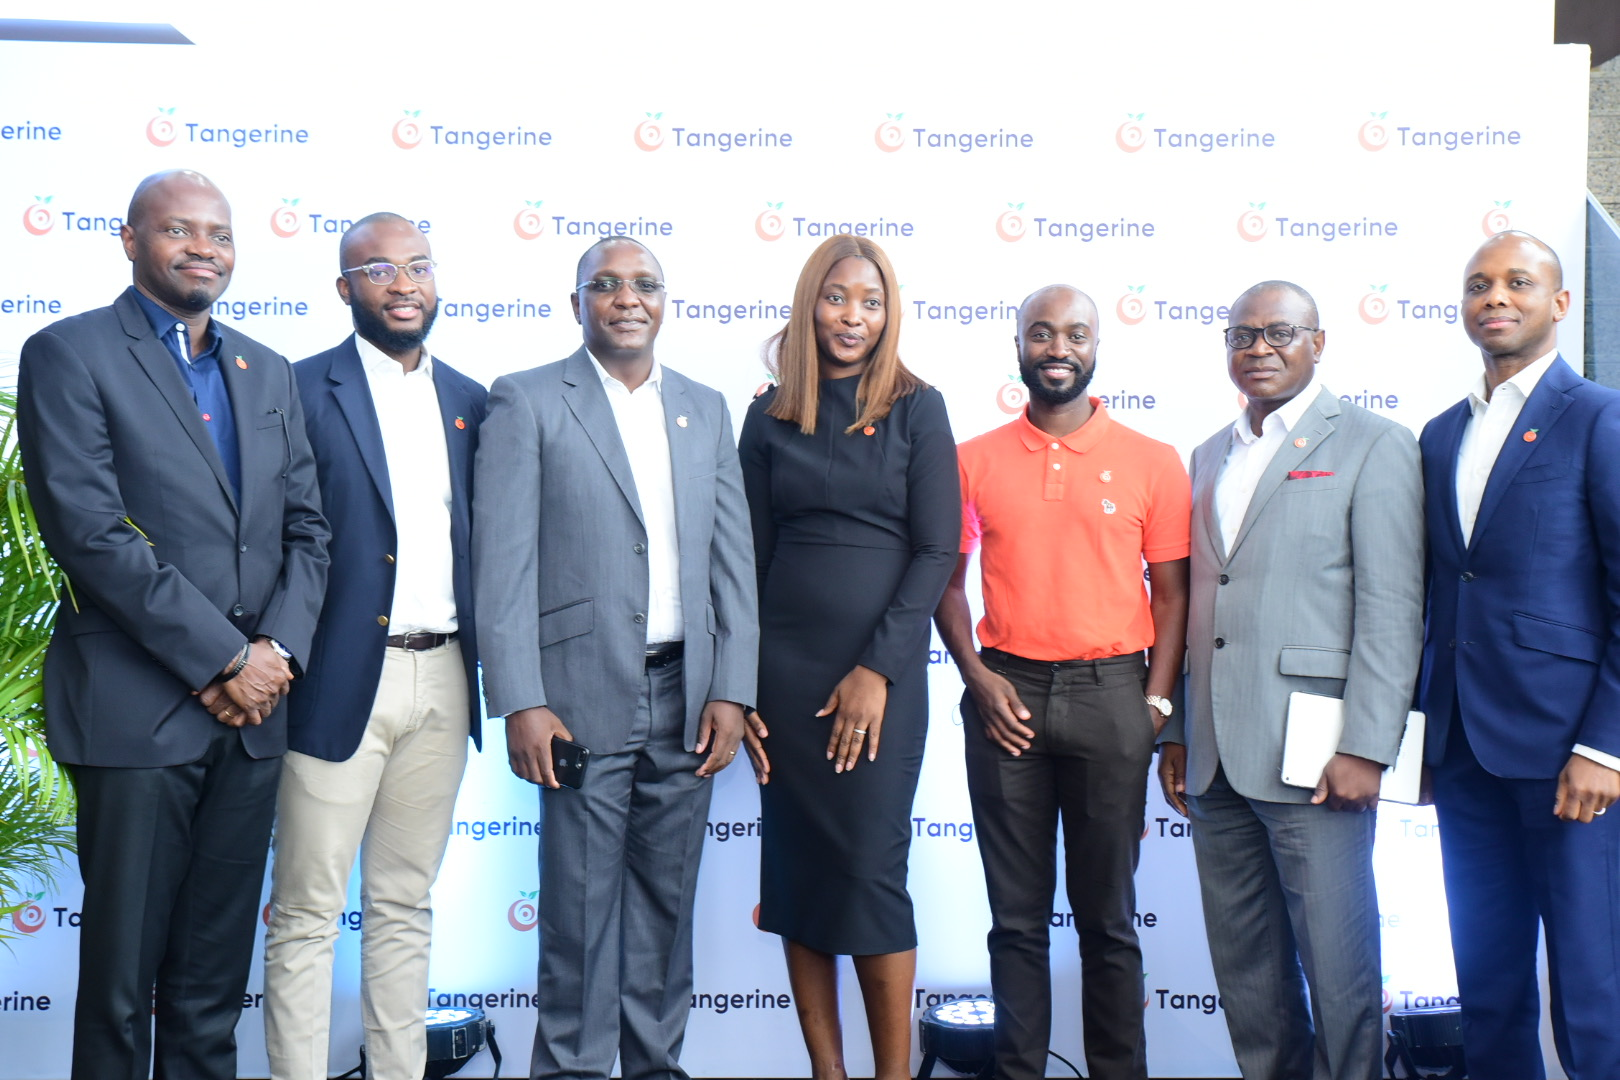 From L-R: Yomi Onifade , Head Operations, Tangerine Nigeria, Ibitunde Balogun, Head Commercial, Tangerine Nigeria, Livingstone Magorimbo, Head Life Insurance, Labisi Adesokan, Head Brand and Communications, Tangerine, Akinseye Akinola - Head Banking Services, Tangerine Nigeria , Ademayowa Adeduro, Head General Insurance, Tangerine Nigeria & Dapo Akisanya, Head Pensions, Tangerine Nigeria at the Tangerine official launch press conference held on Wednesday 7th July, 2021.